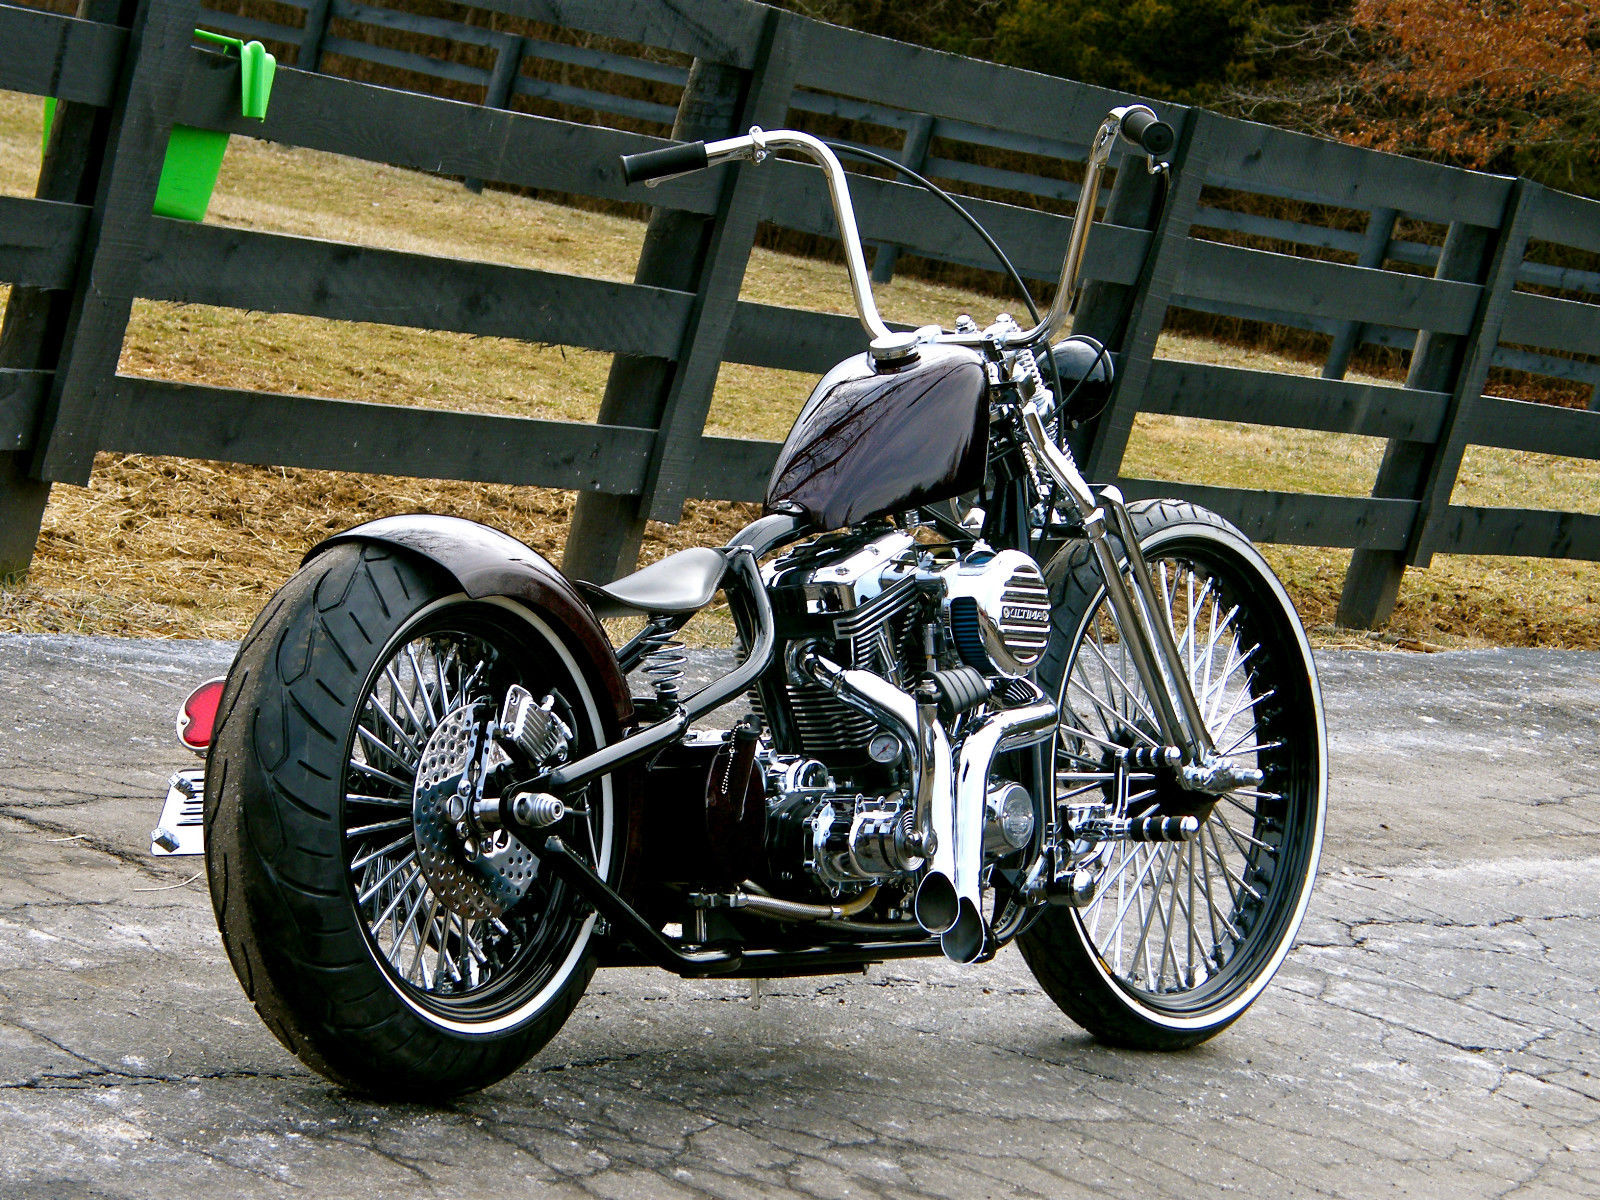 Bobber Wiring Can Search For Diagrams Xs650 Harness Custom Fat Tire 200mm Show Winning Pro Hot Rod Harley Diagram